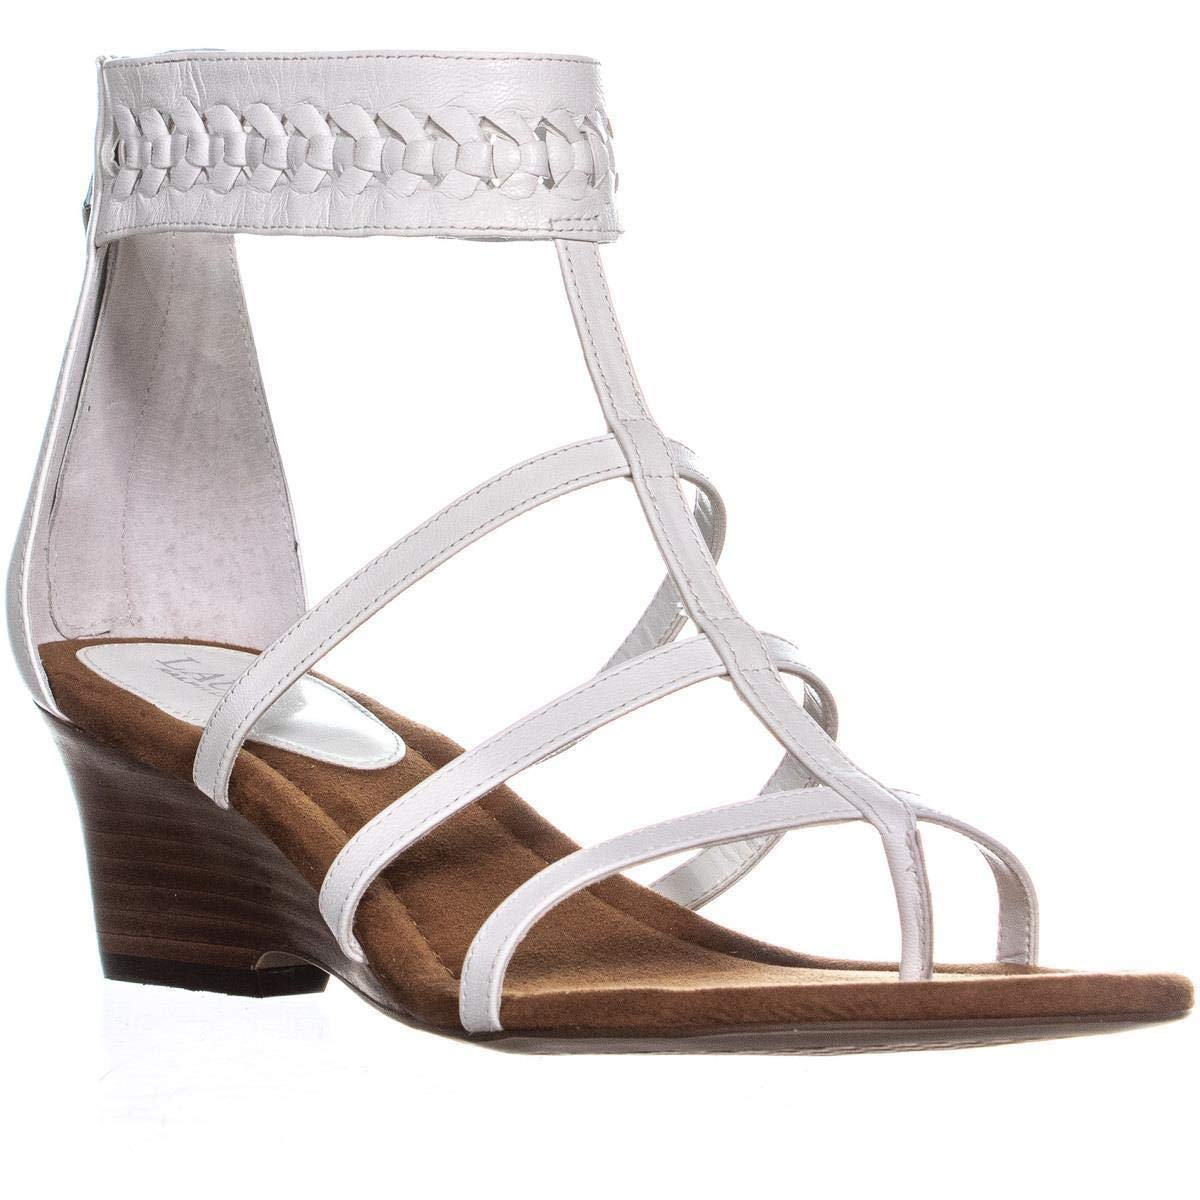 White Leather Lauren Ralph Lauren Meira Wedge Gladiator Sandals, Silver